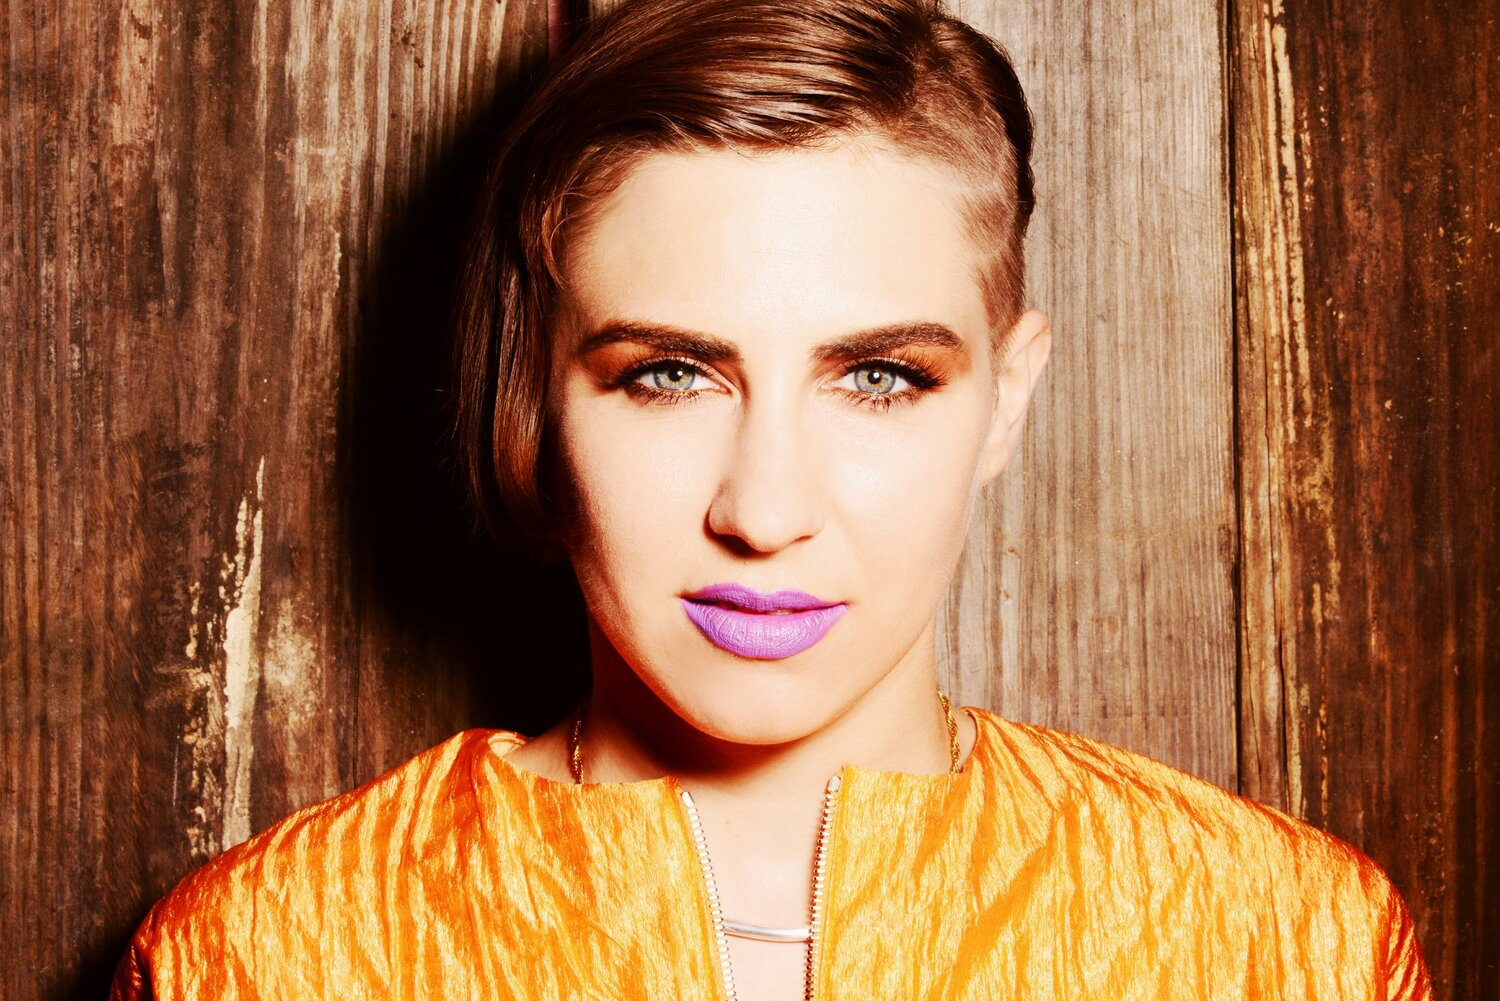 MEET MARY ALOUETTE - Also known by her artist name Alarke, Mary stands out with her compelling twist of experiences as an international opera singer turned Gypsy jazz singer turned award-winning electronic pop singer and songwriter.